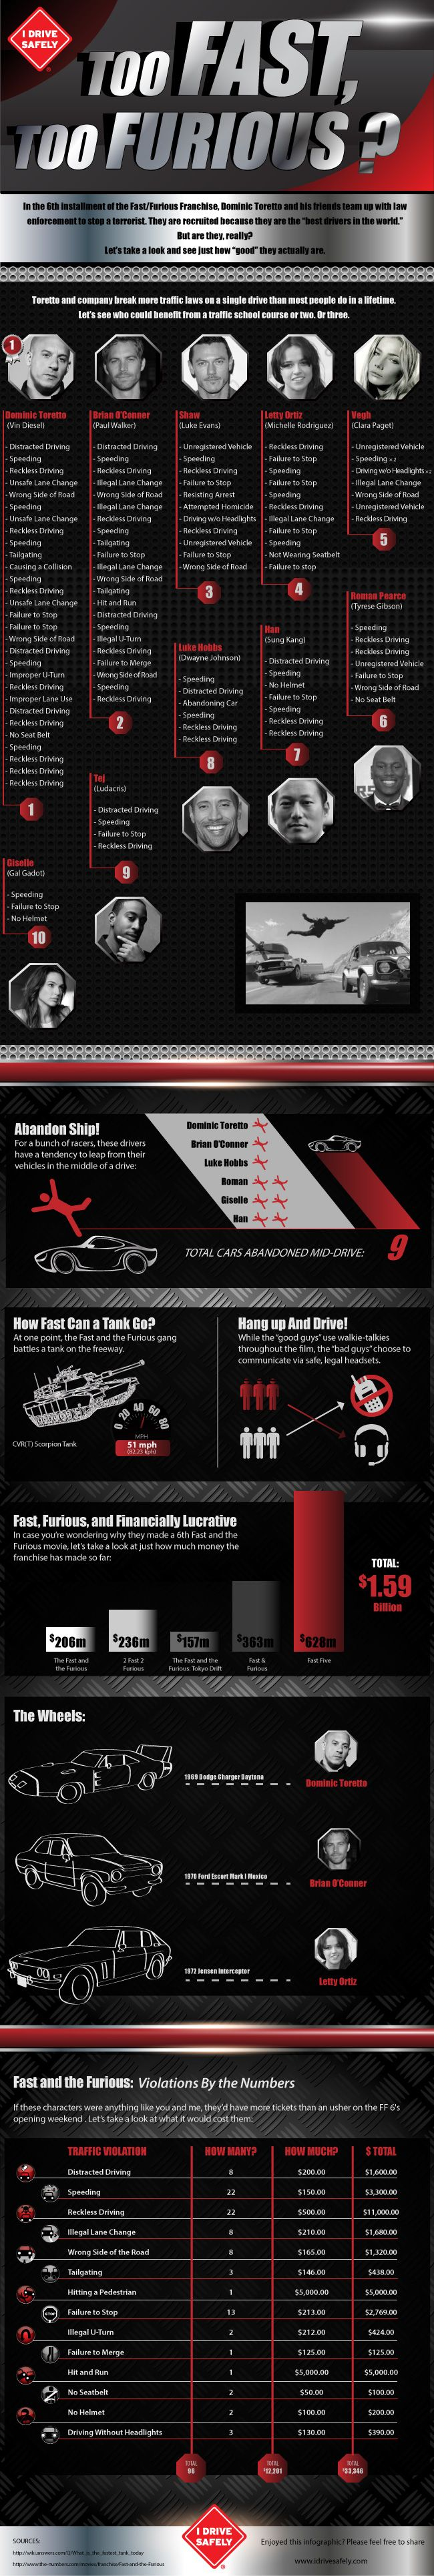 Too Fast  Furious: A Look at all the traffic violations in The Fast and the Furious 6!